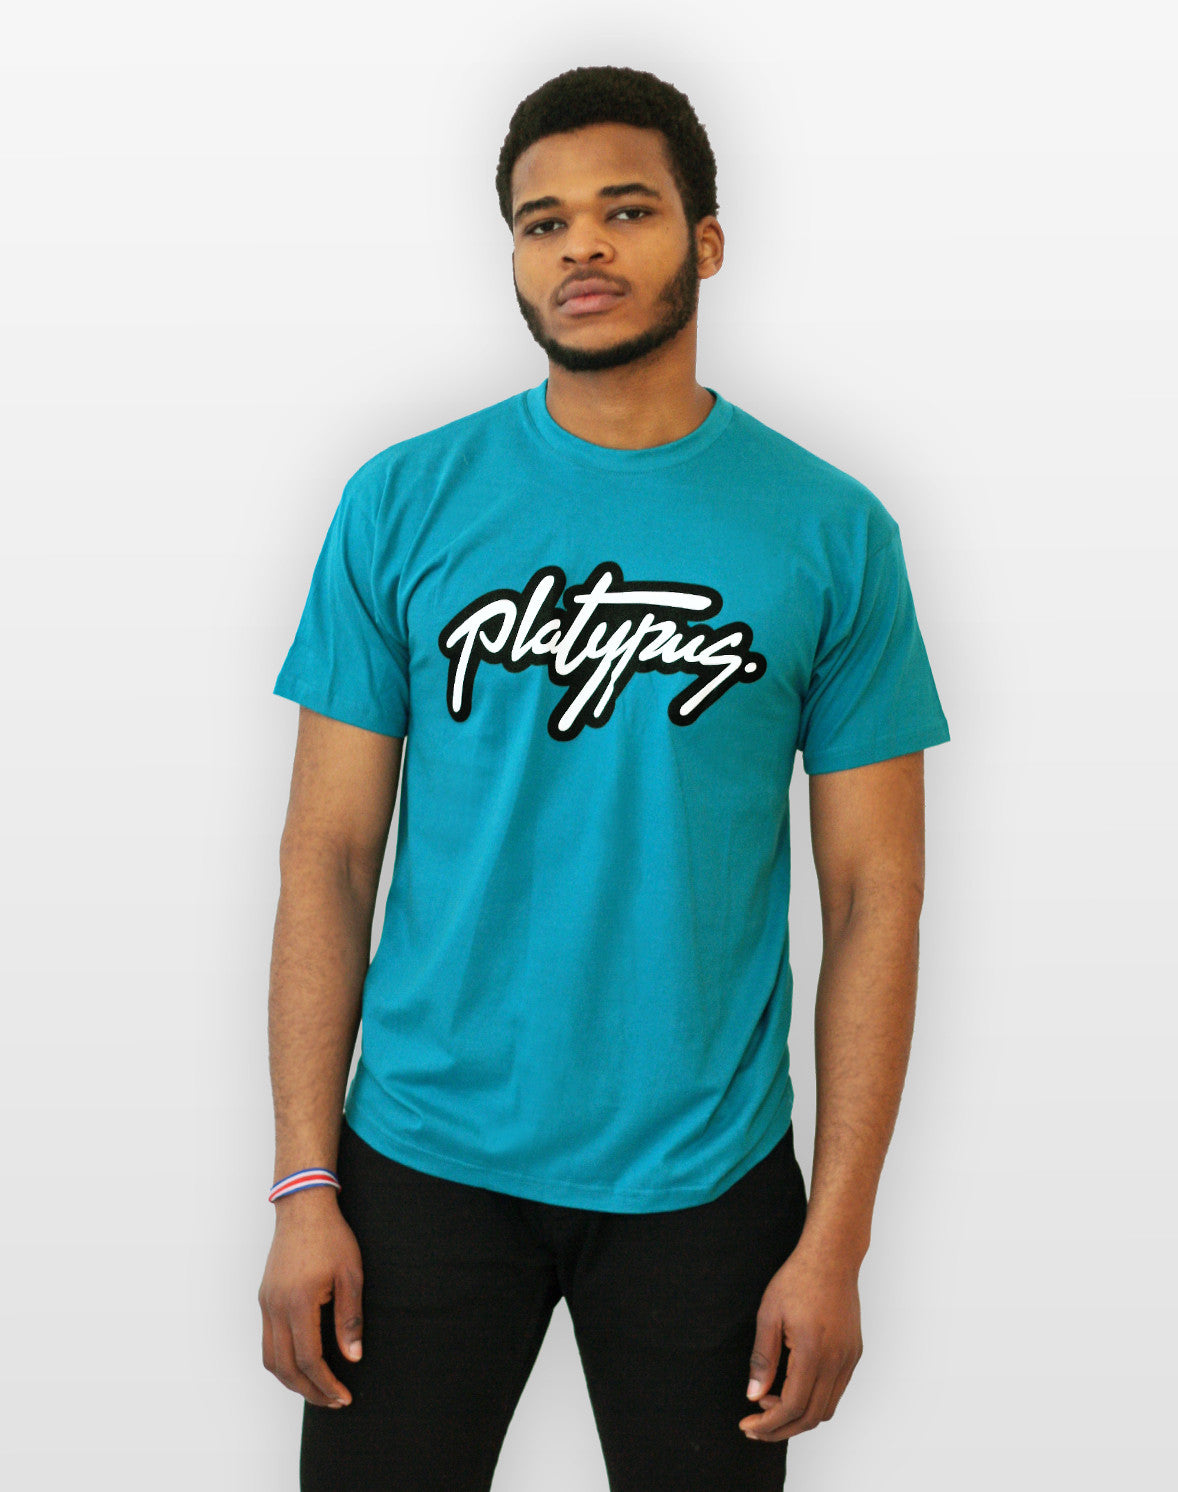 Model shot of Platypus logo tshirt